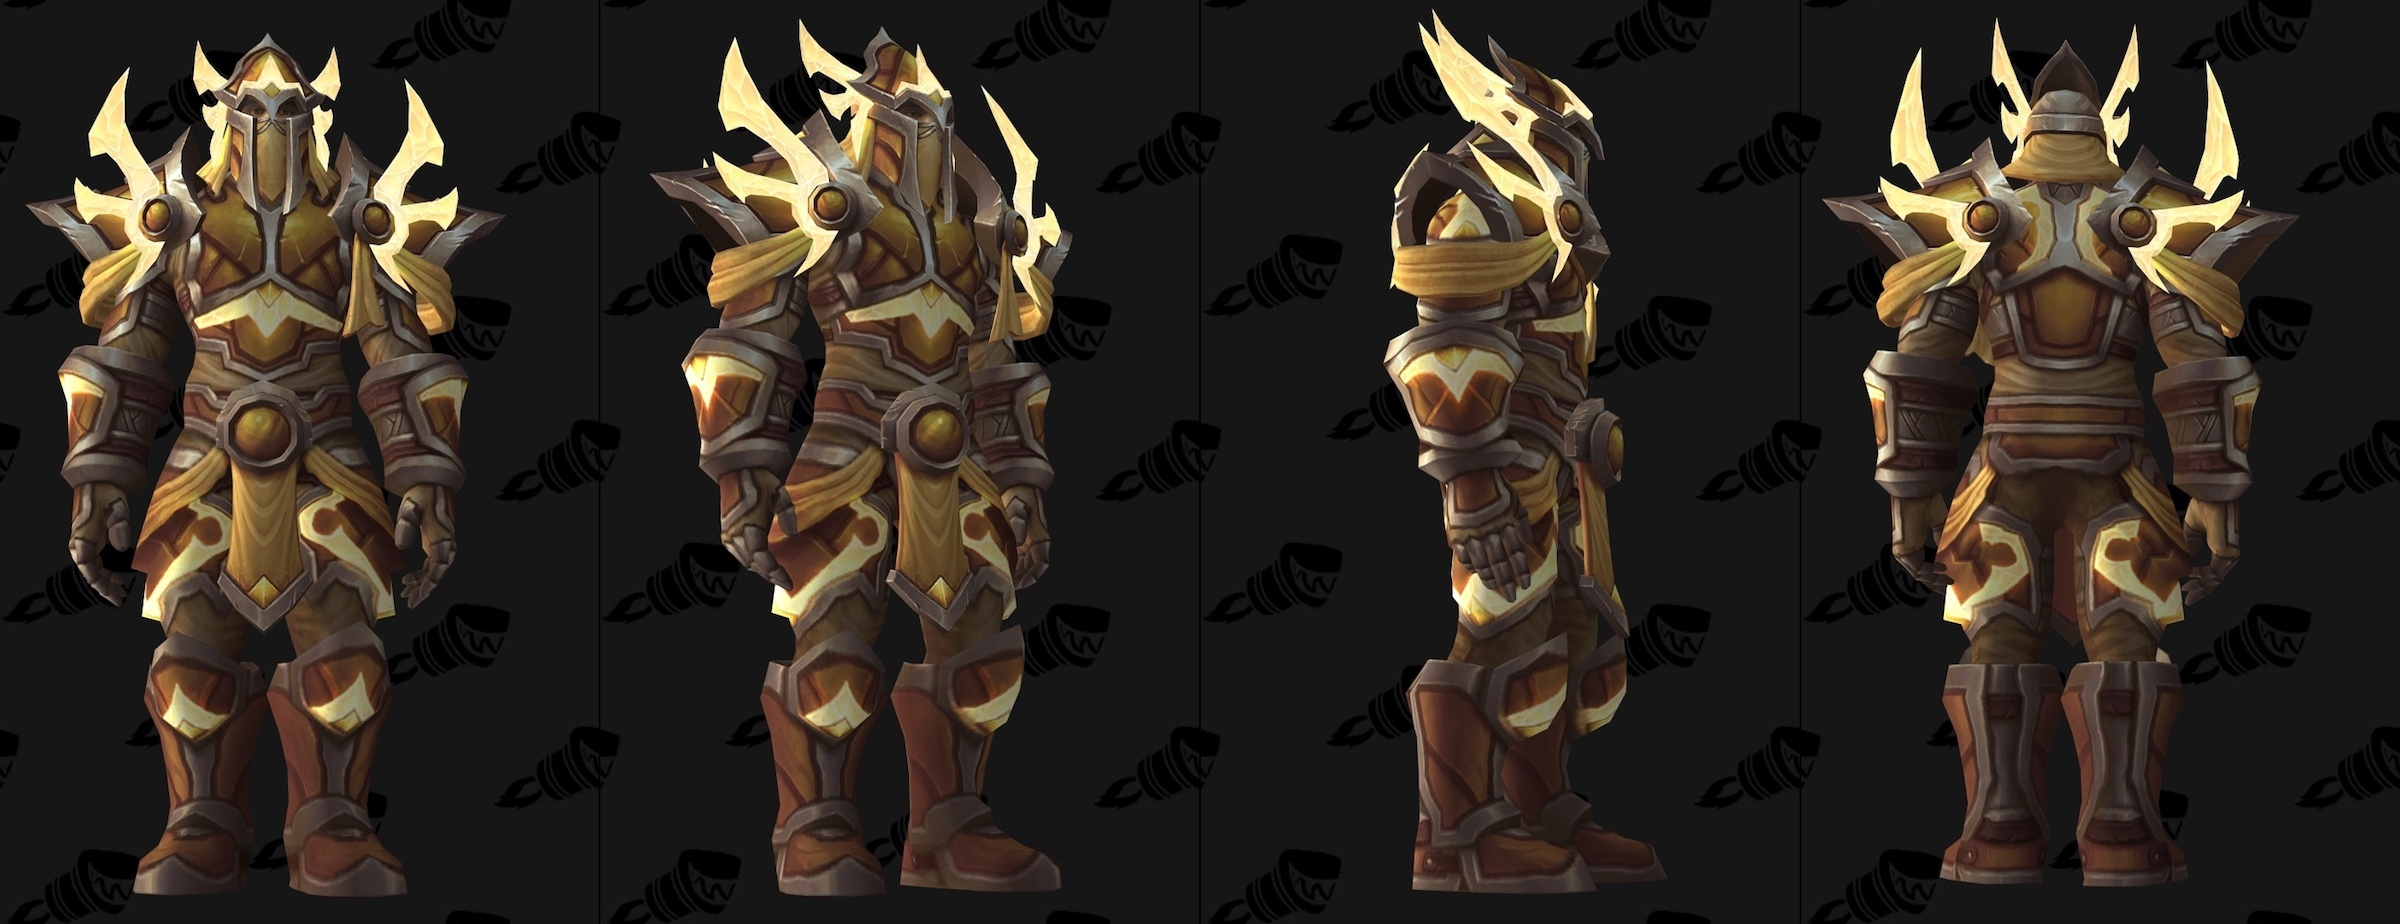 & Patch 7.3 Argus Armor Sets - Wowhead News